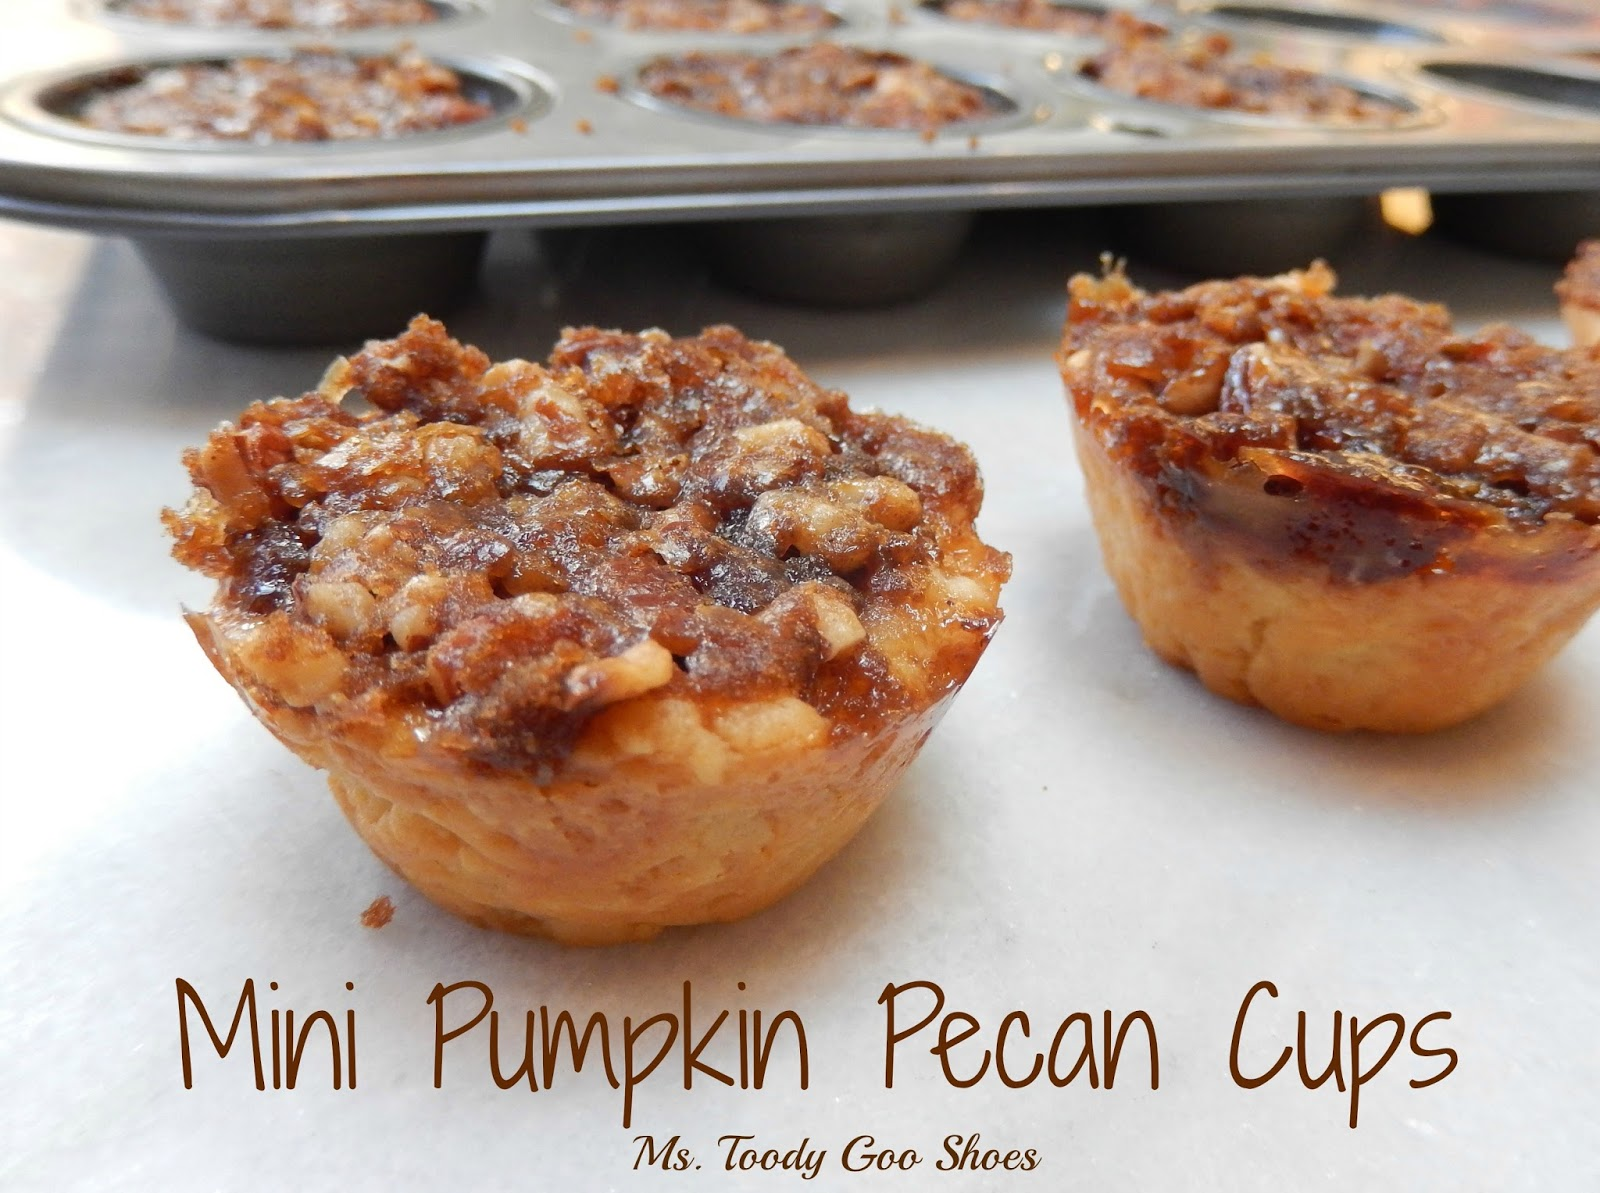 Mini Pumpkin Pecan Cups